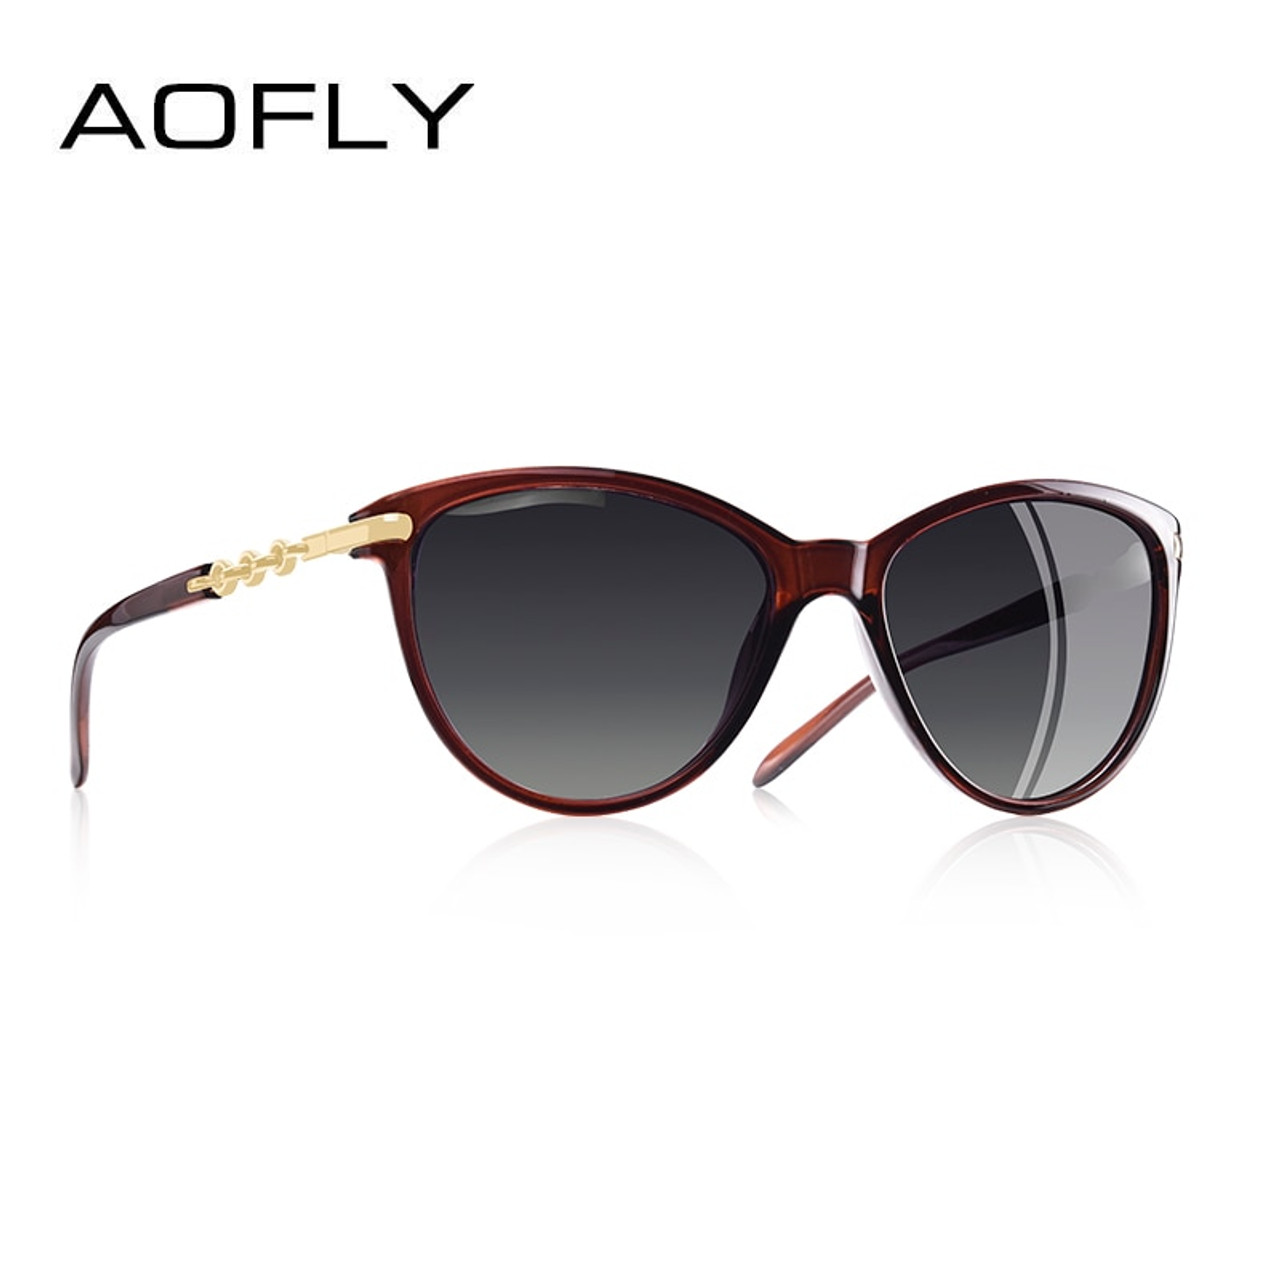 6eec9f93b5 ... AOFLY BRAND DESIGN Cat Eye Polarized Sunglasses Women Polarized Sun Glasses  Female Gradient Shades Oculos Feminino ...